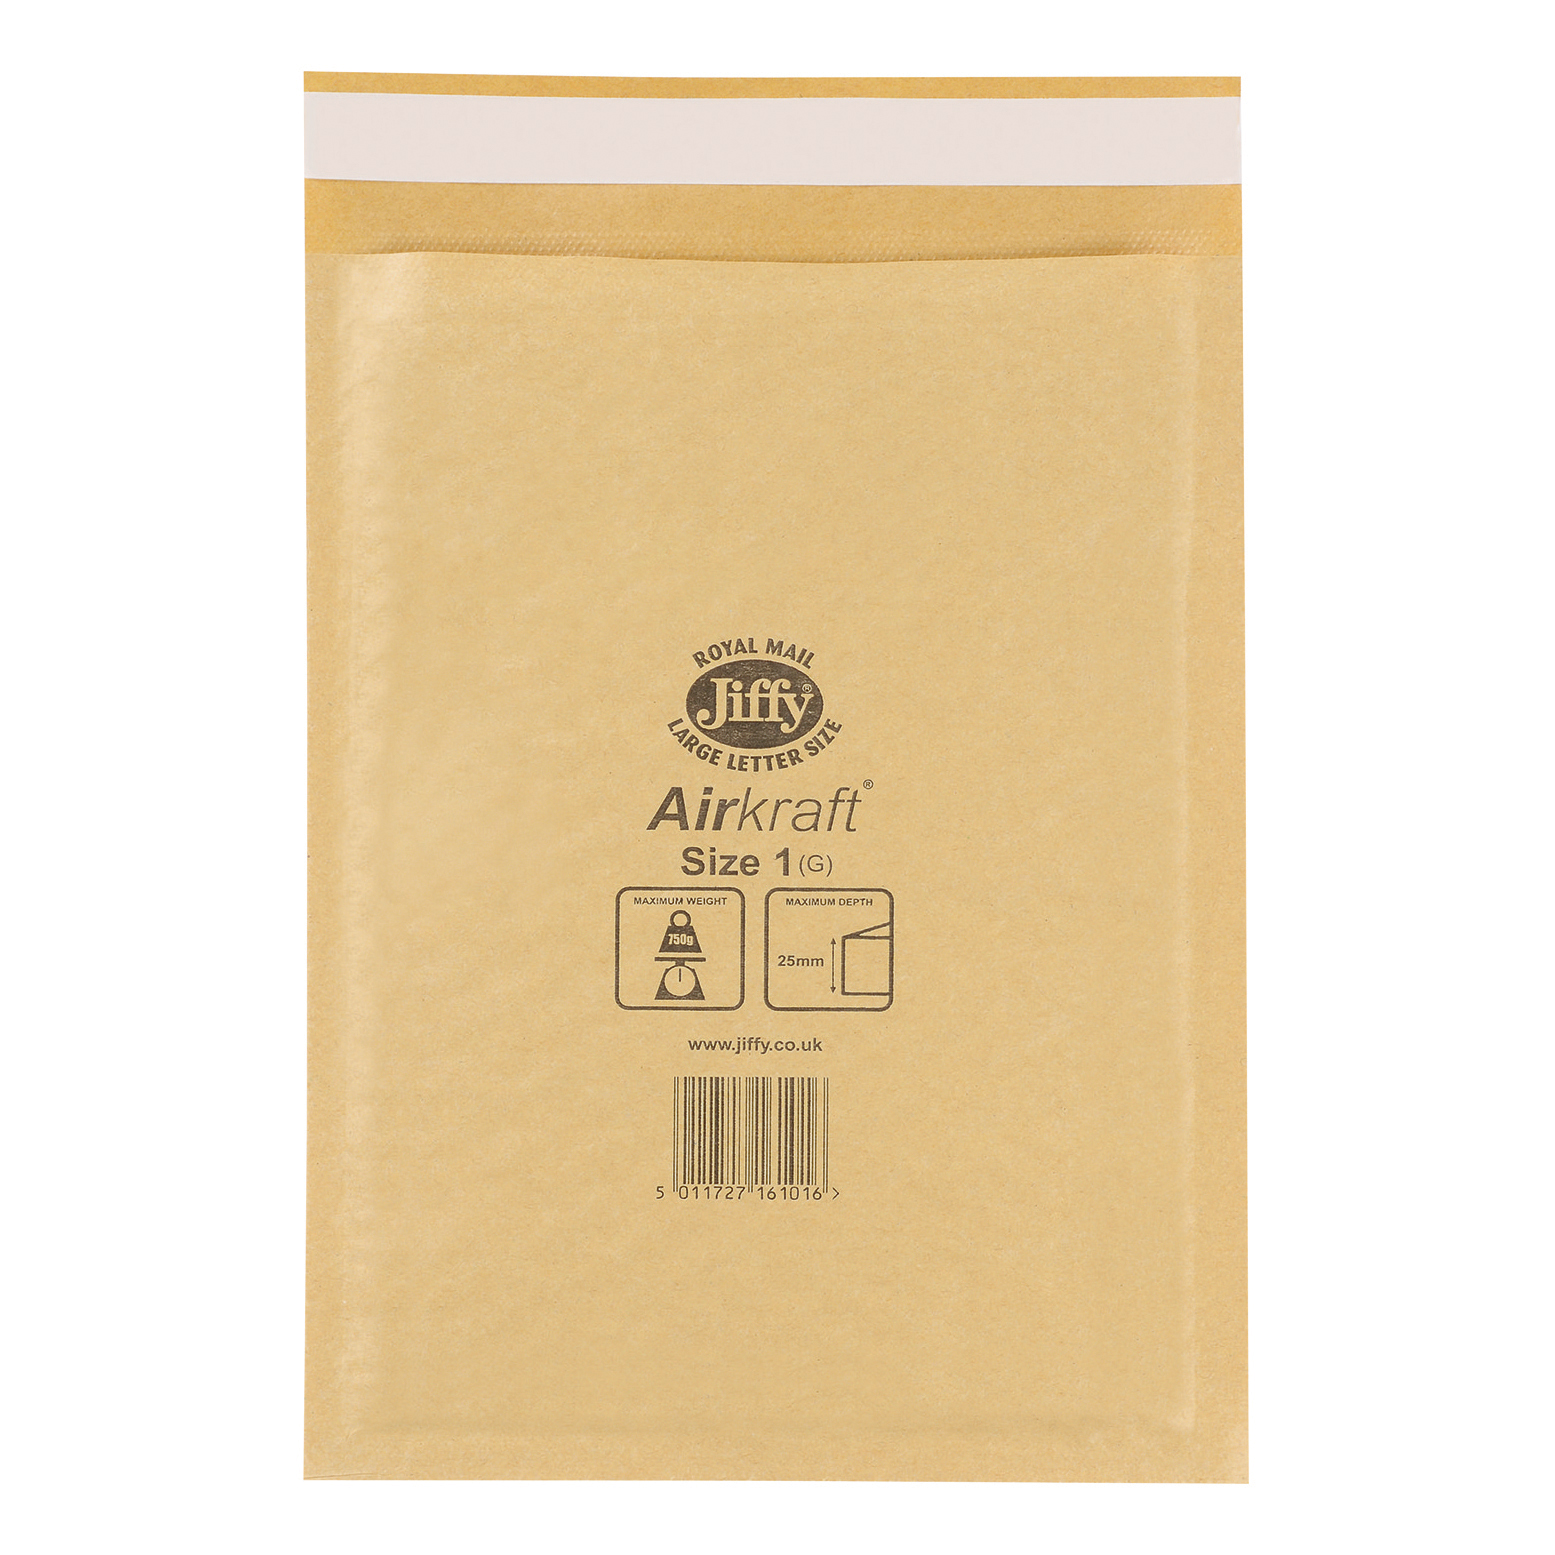 Jiffy Airkraft Bubble Bag Envelopes Size 1 170x245mm Gold Ref JL-GO-1 Pack 100